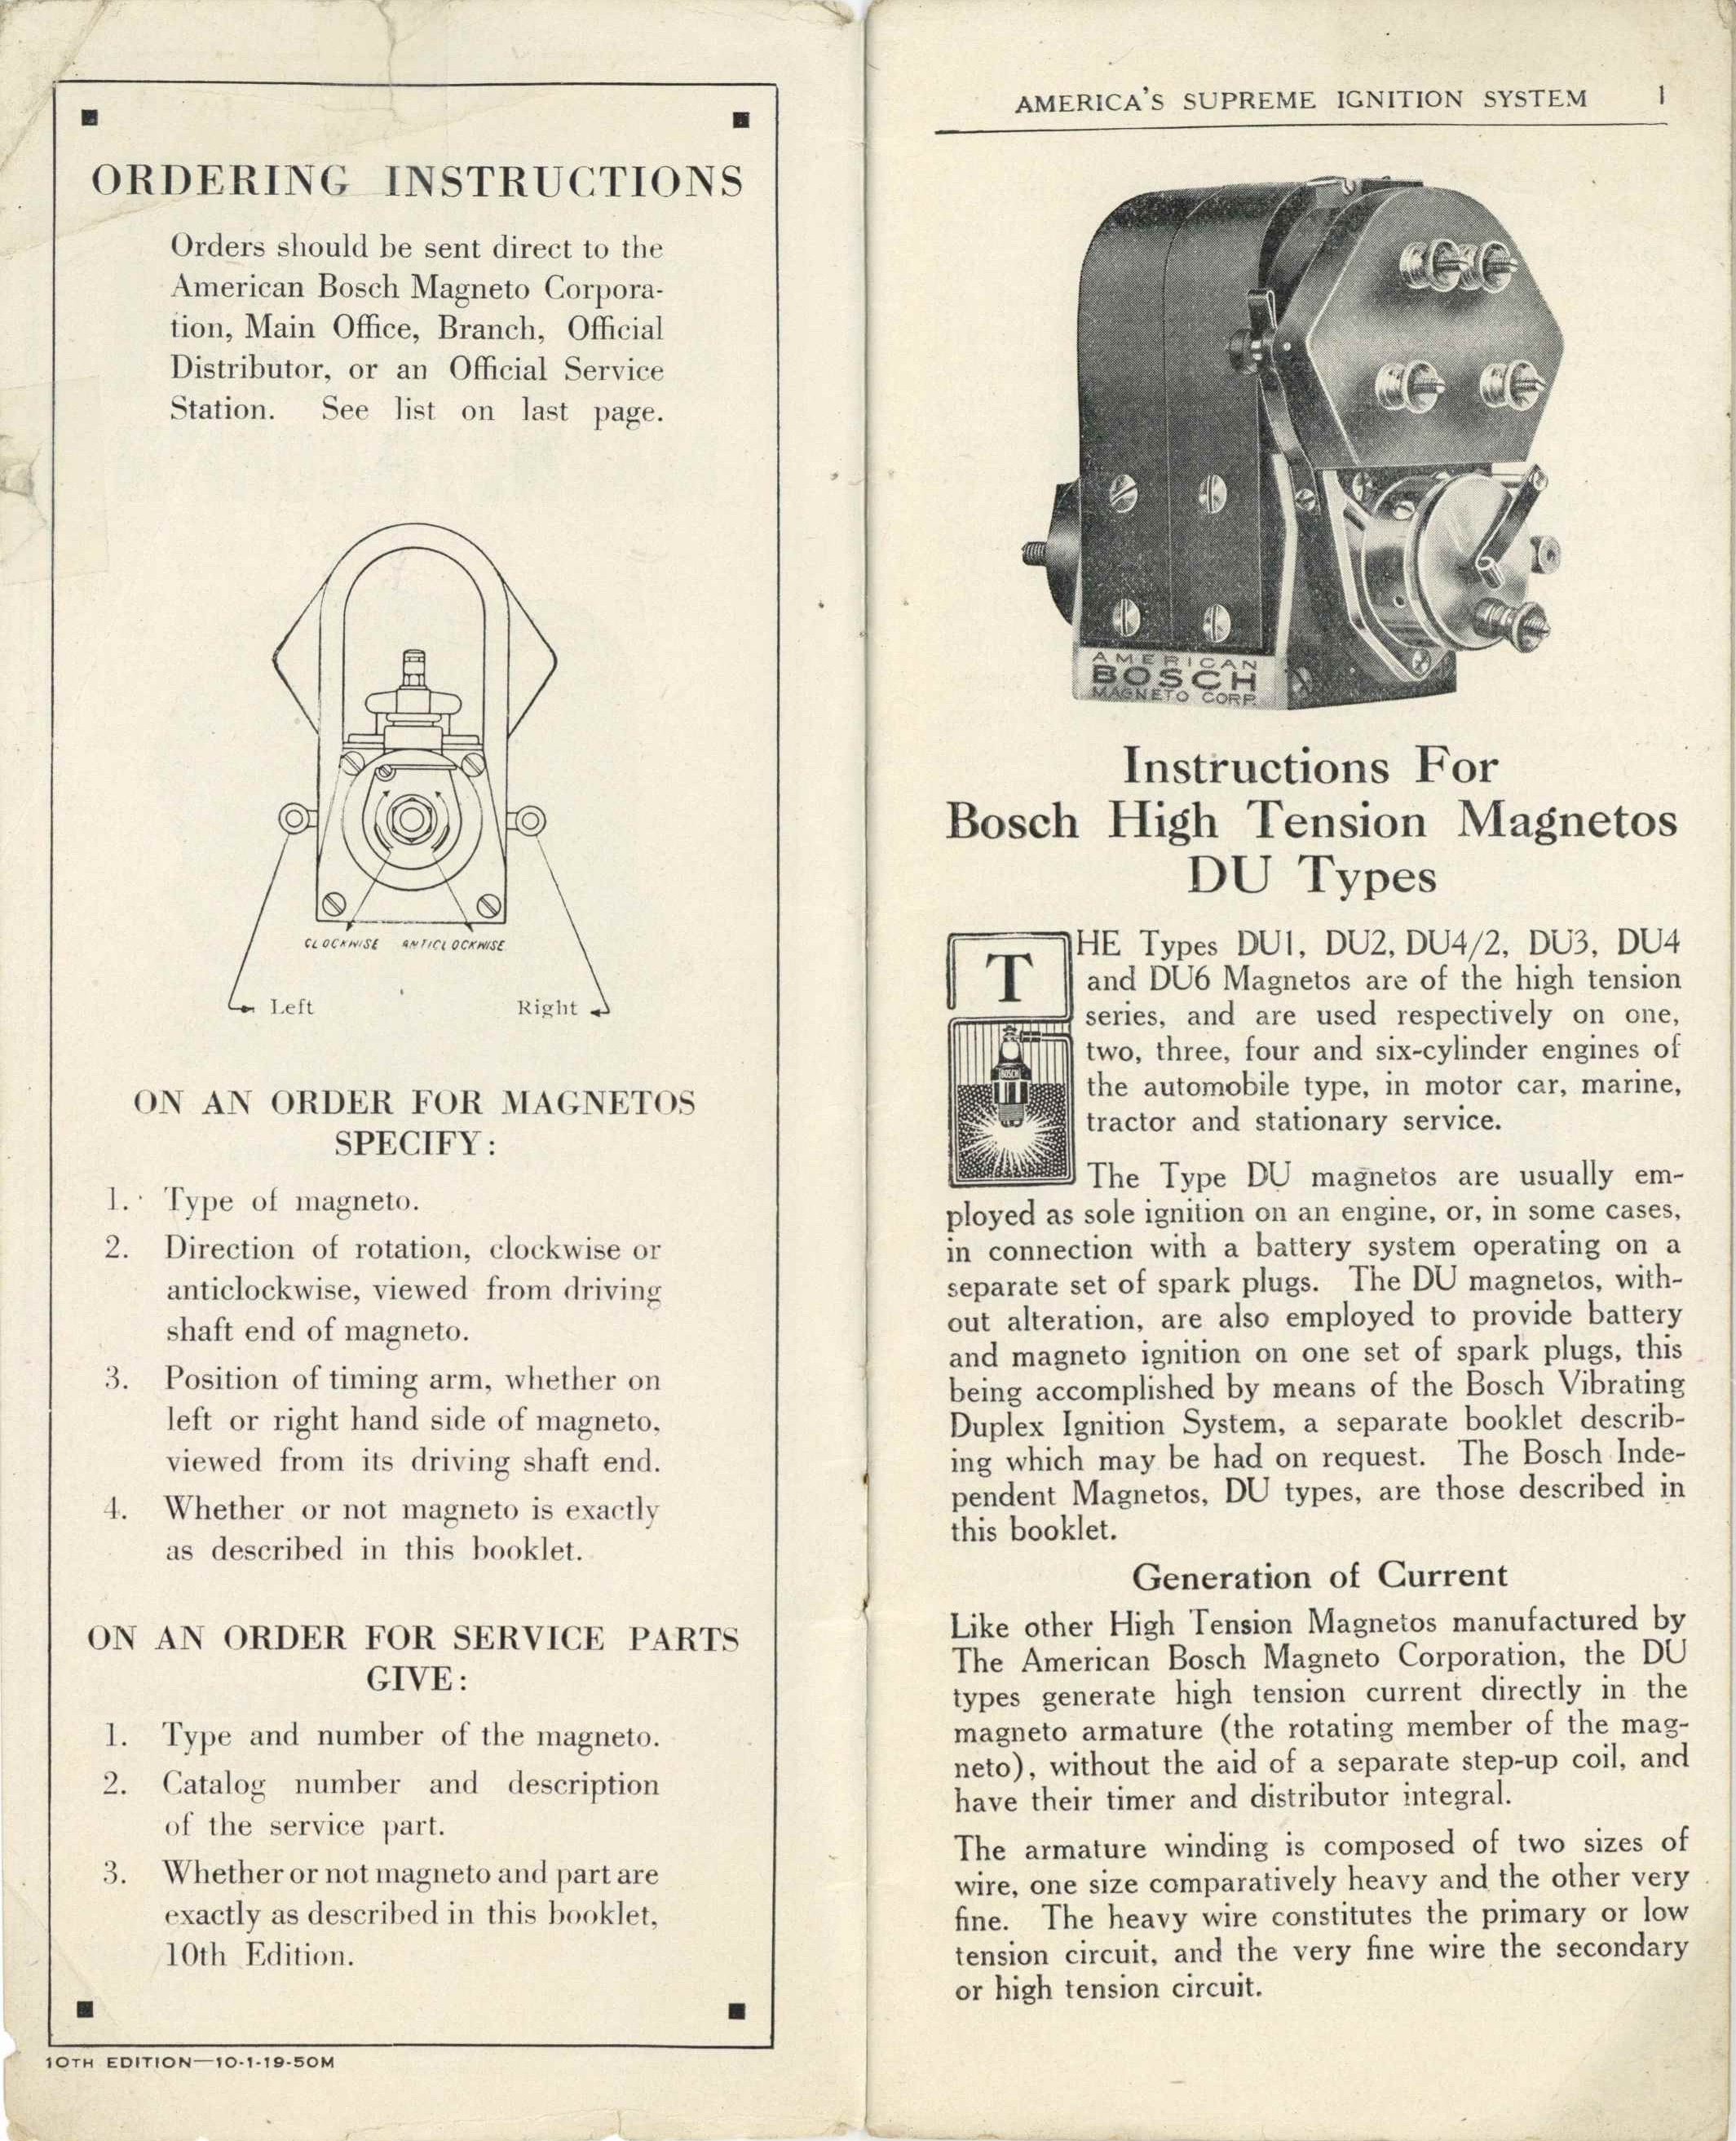 1919 american bosch magnet corp'n type du magneto for gasoline     on